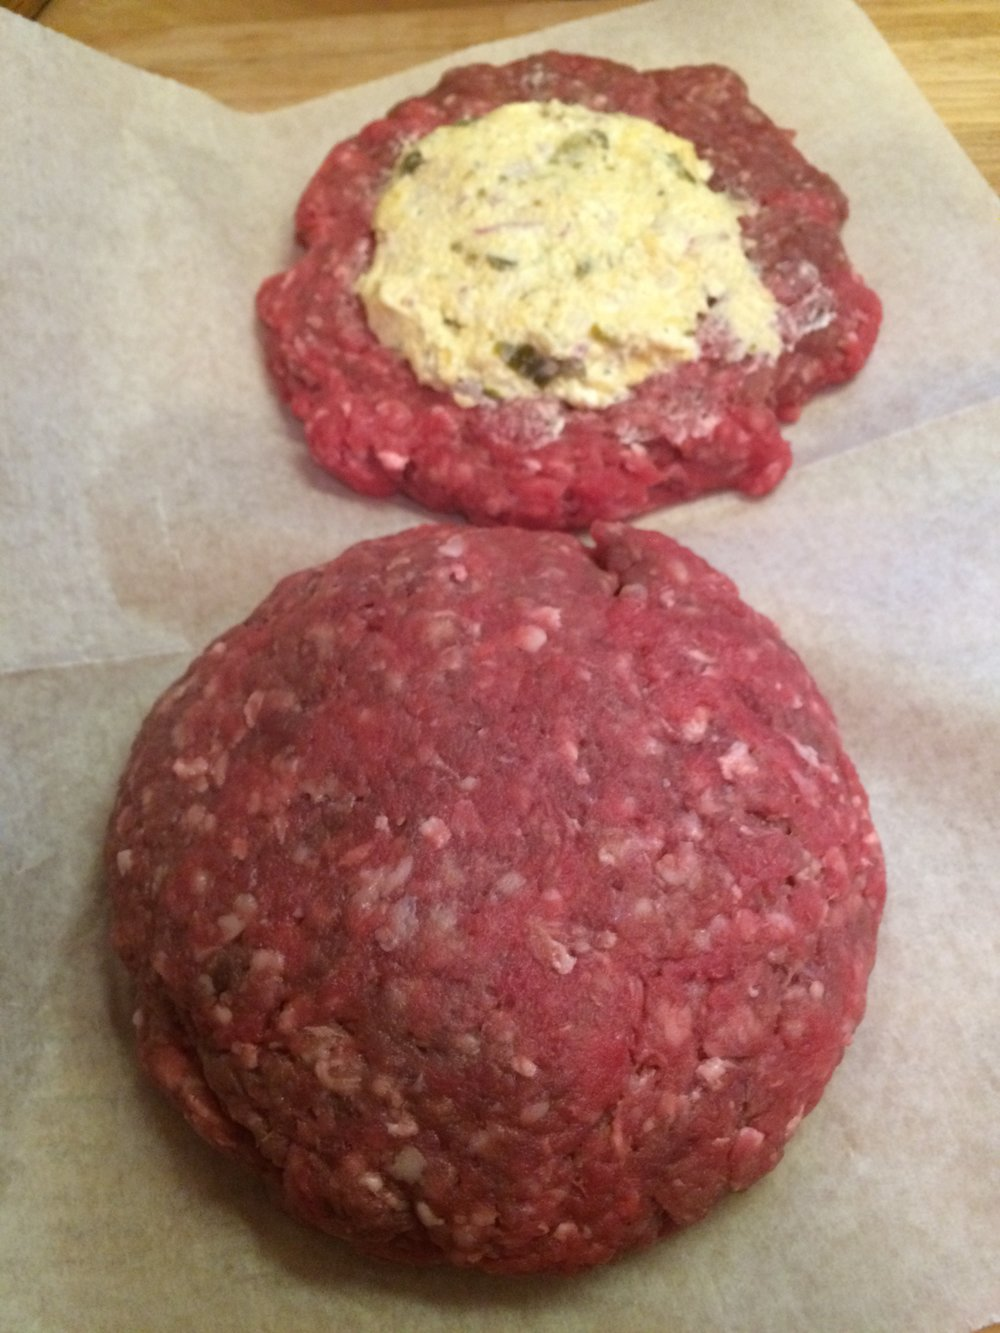 Seal the edges and reshape the burger. Sprinkle with salt and pepper before putting on the grill